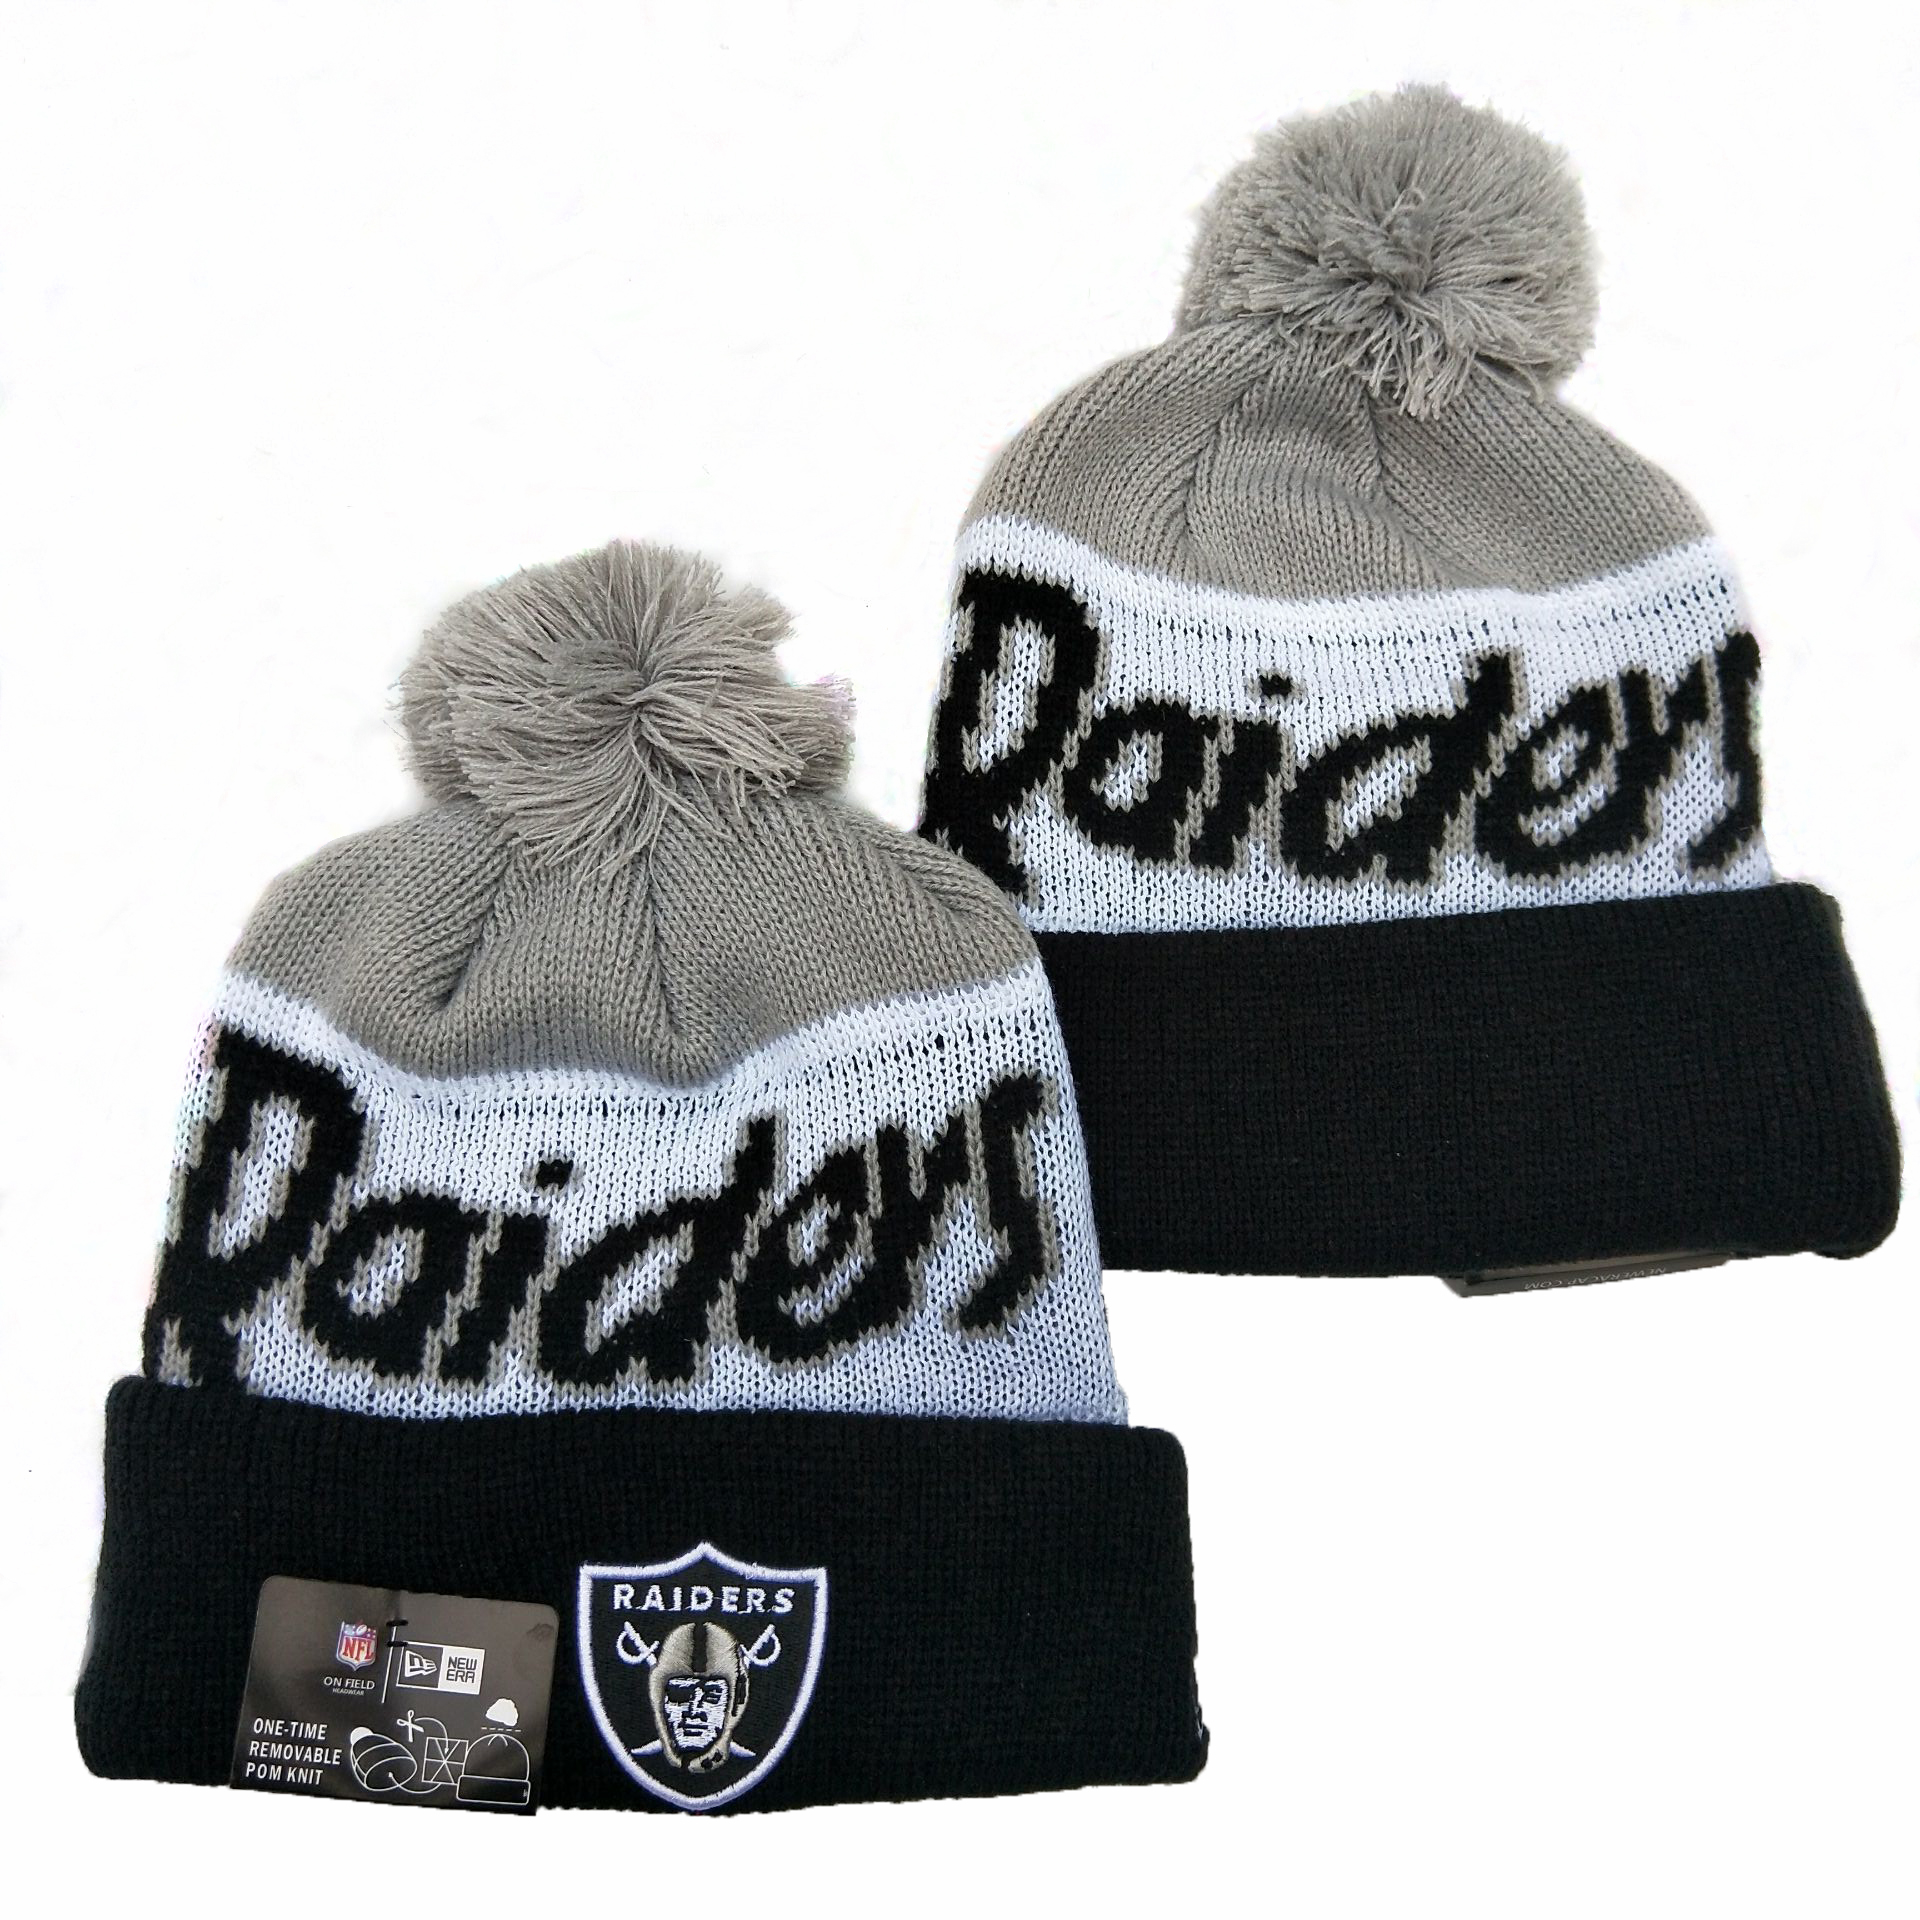 Las Vegas Raiders Knit Hats 057